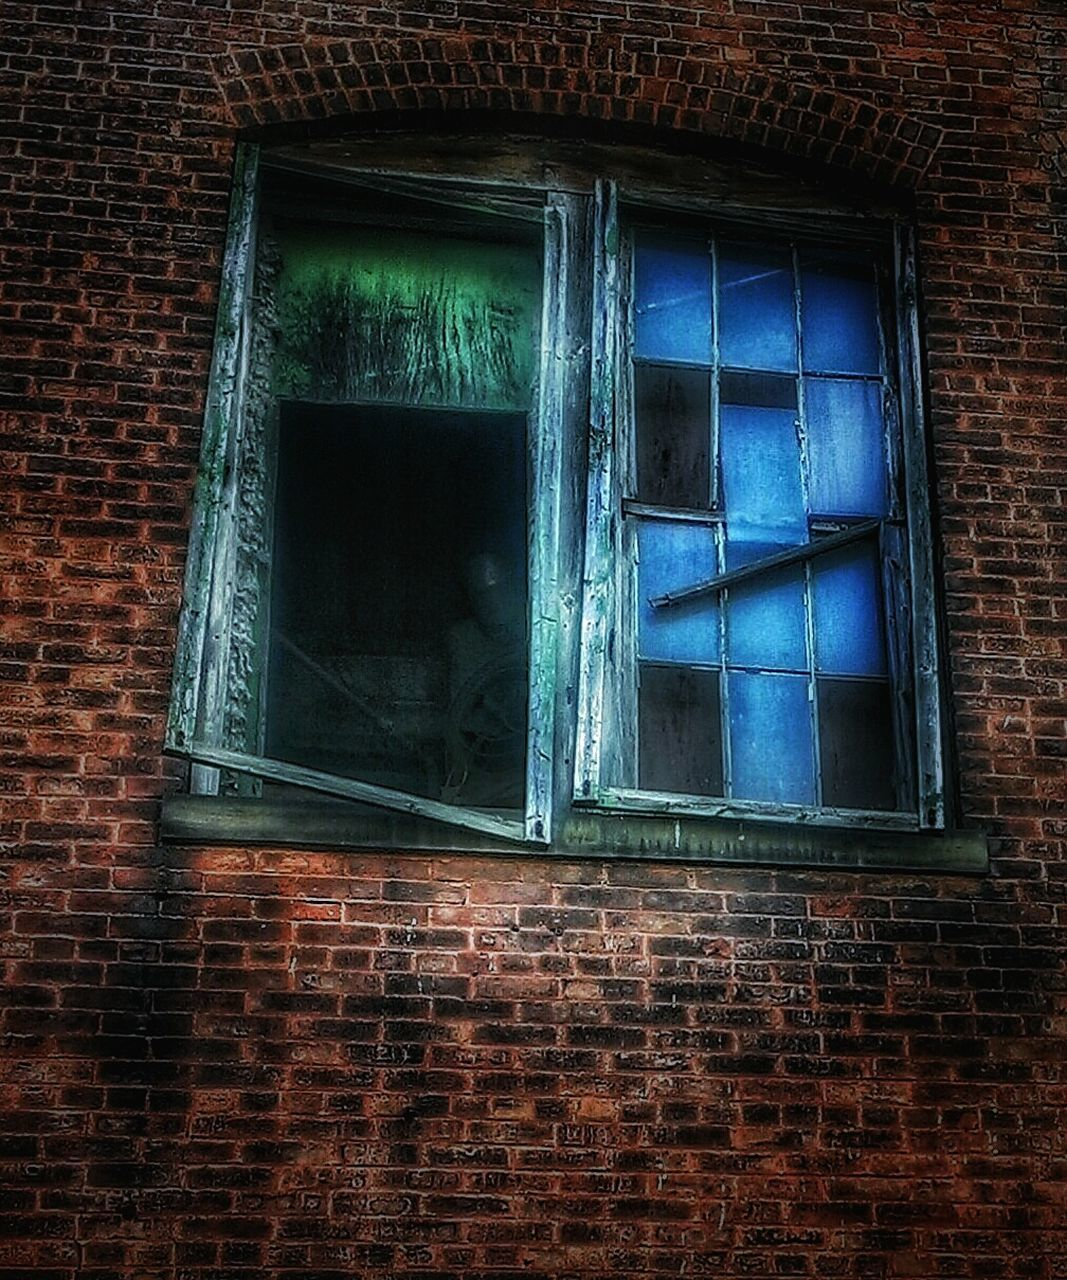 window, architecture, building exterior, brick wall, built structure, no people, low angle view, day, outdoors, close-up